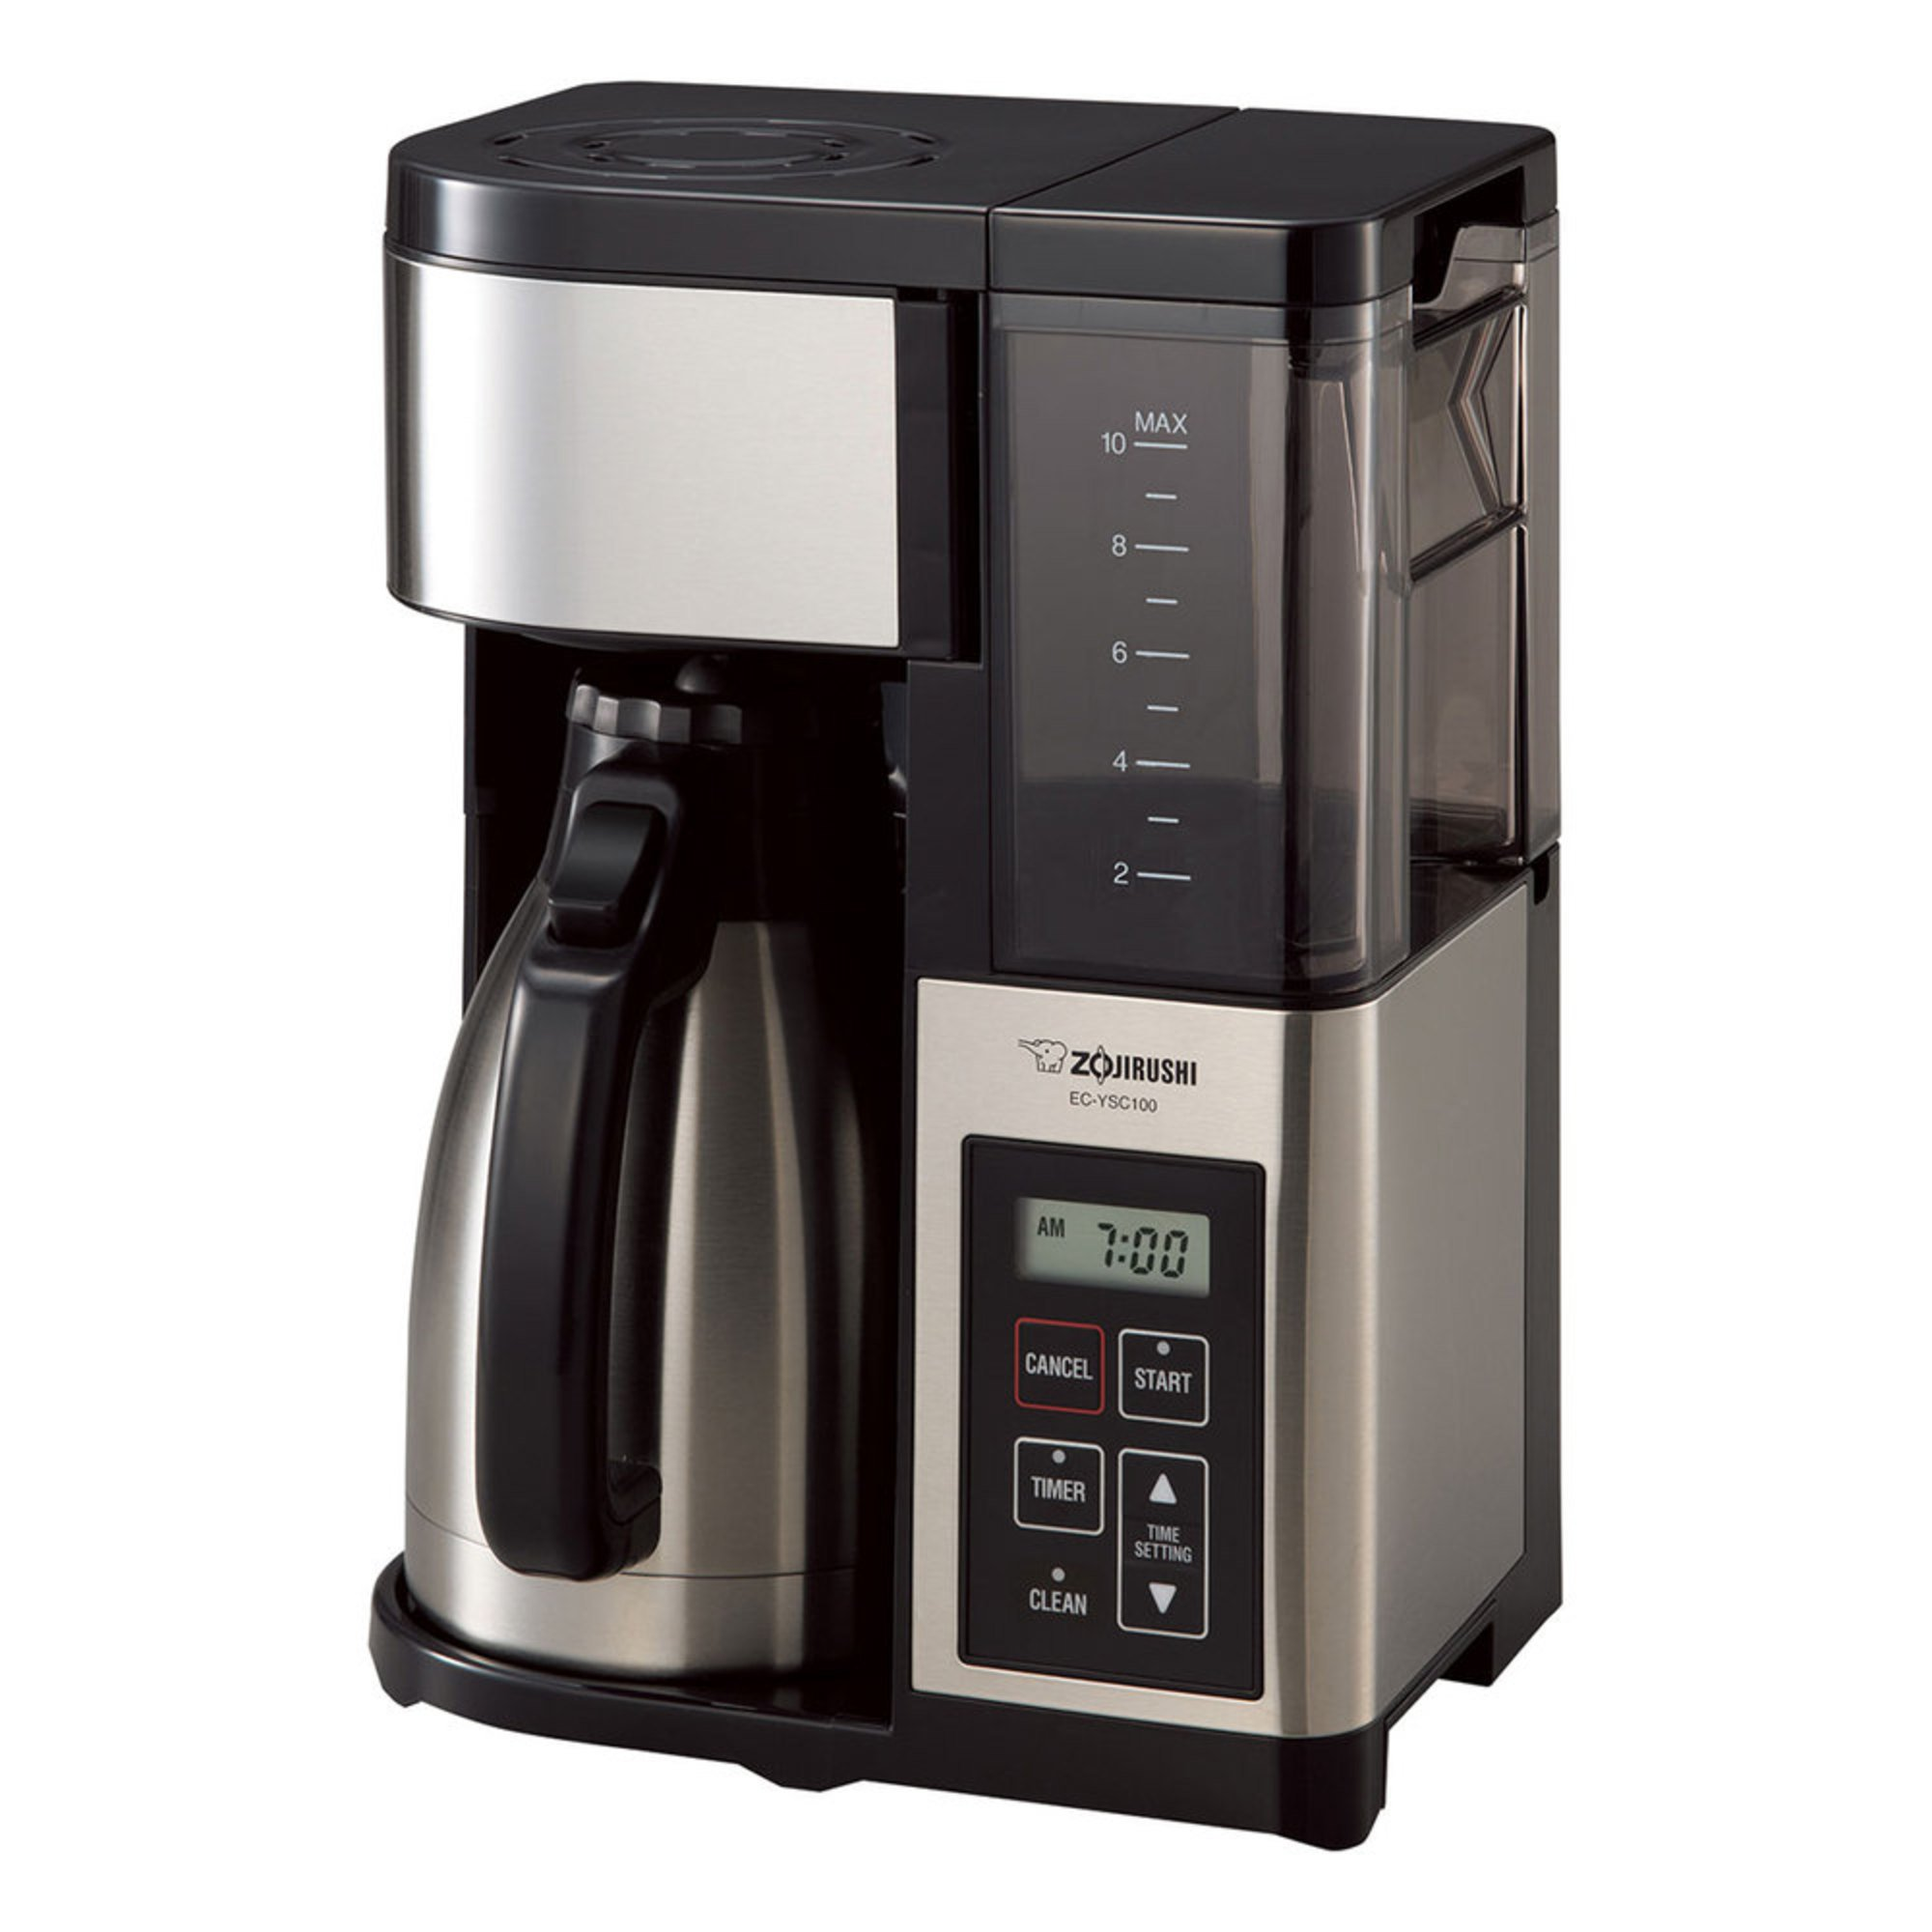 Coffee Maker With Carafe Reviews : Zojirushi Fresh Brew Plus Thermal Carafe Coffee Maker (ec-ysc100xb) Coffee Makers For The ...